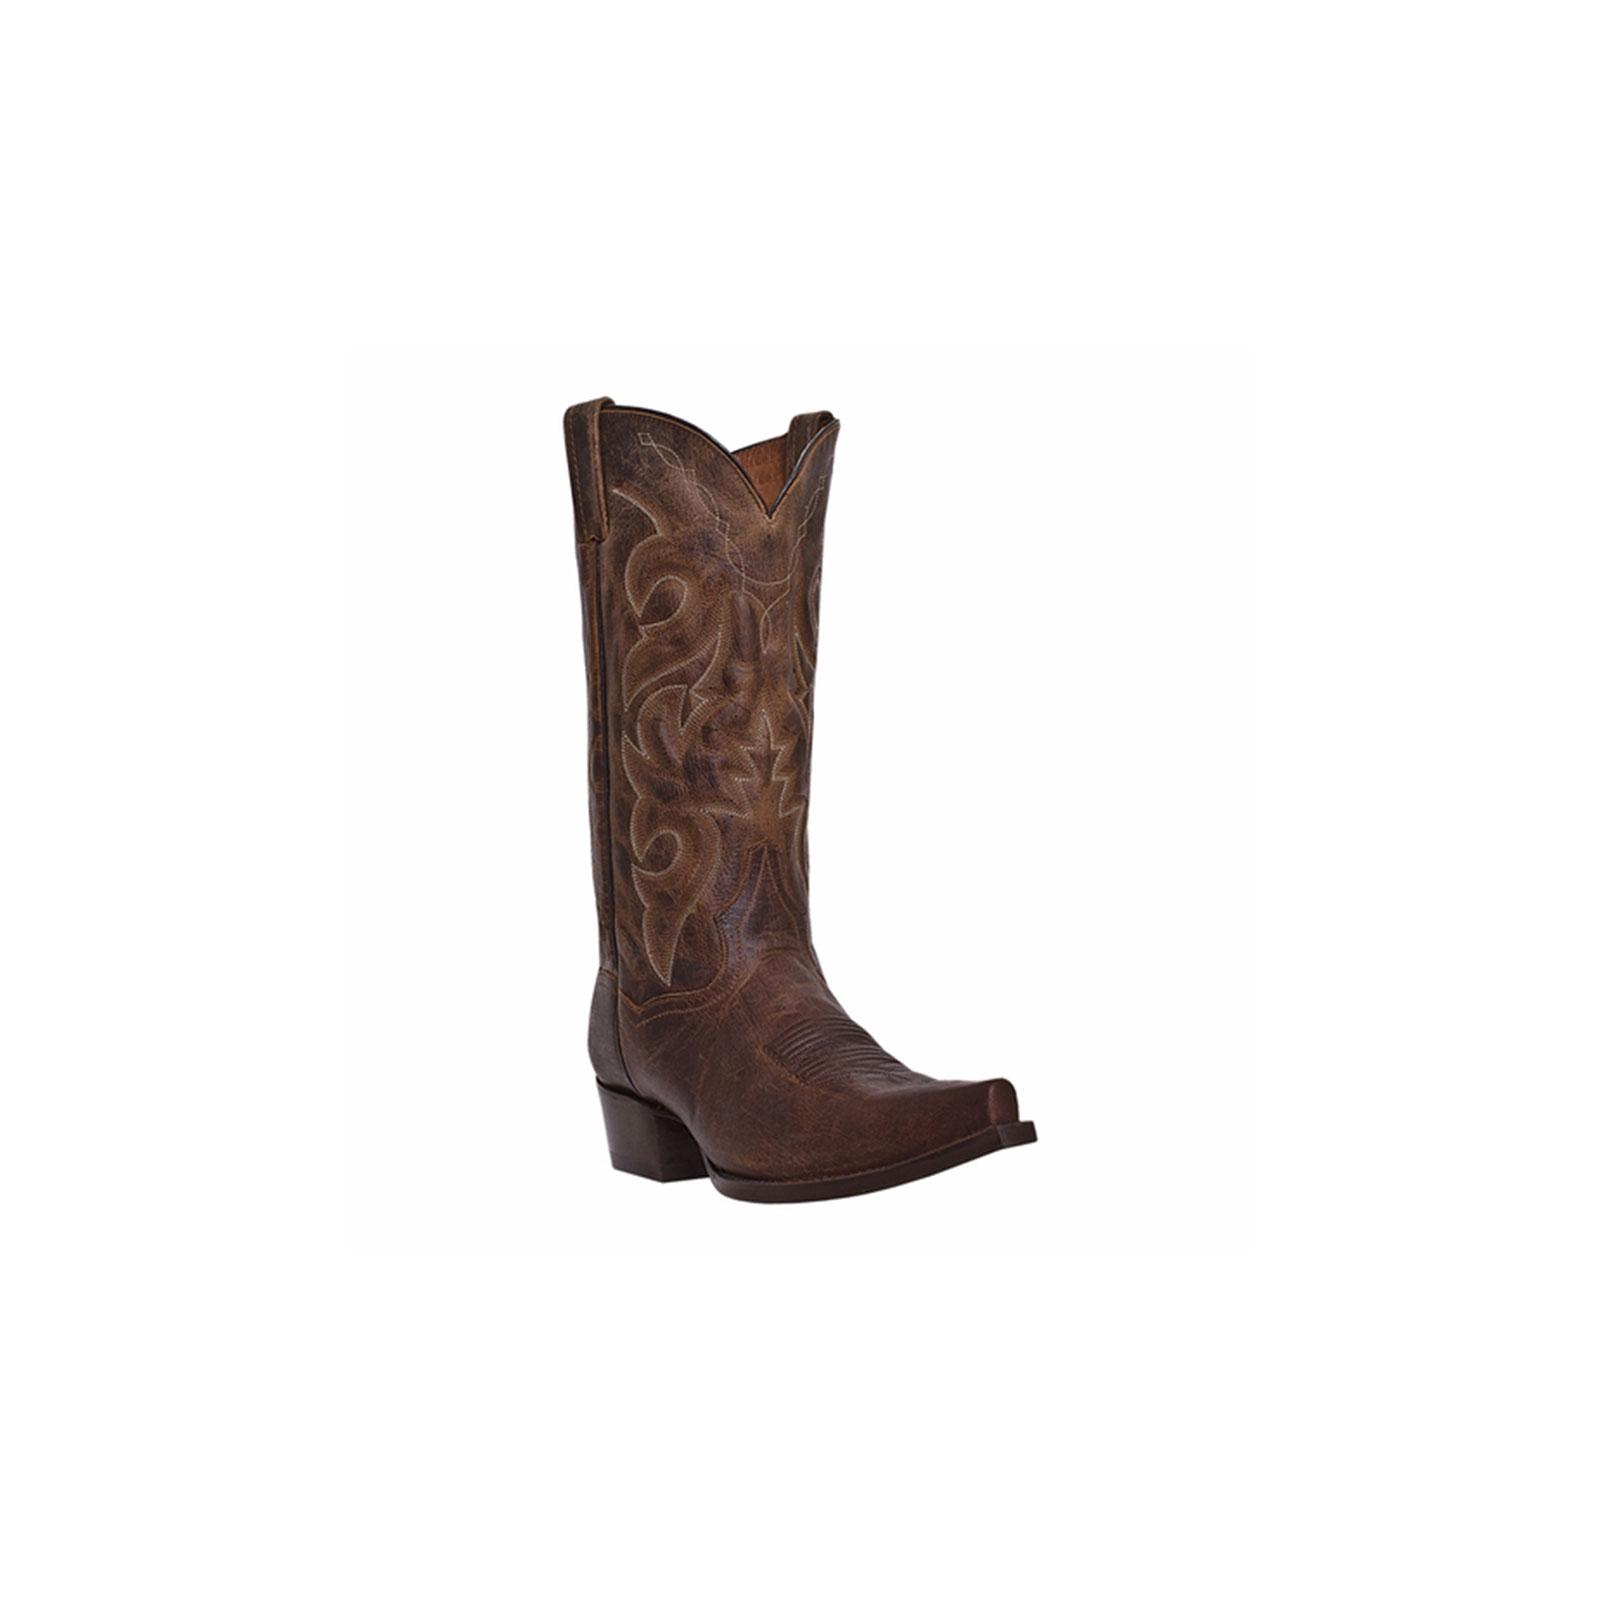 Dan Post DP2159S Men's Bay Apache Mignon Snip Toe Western Boots by DAN POST